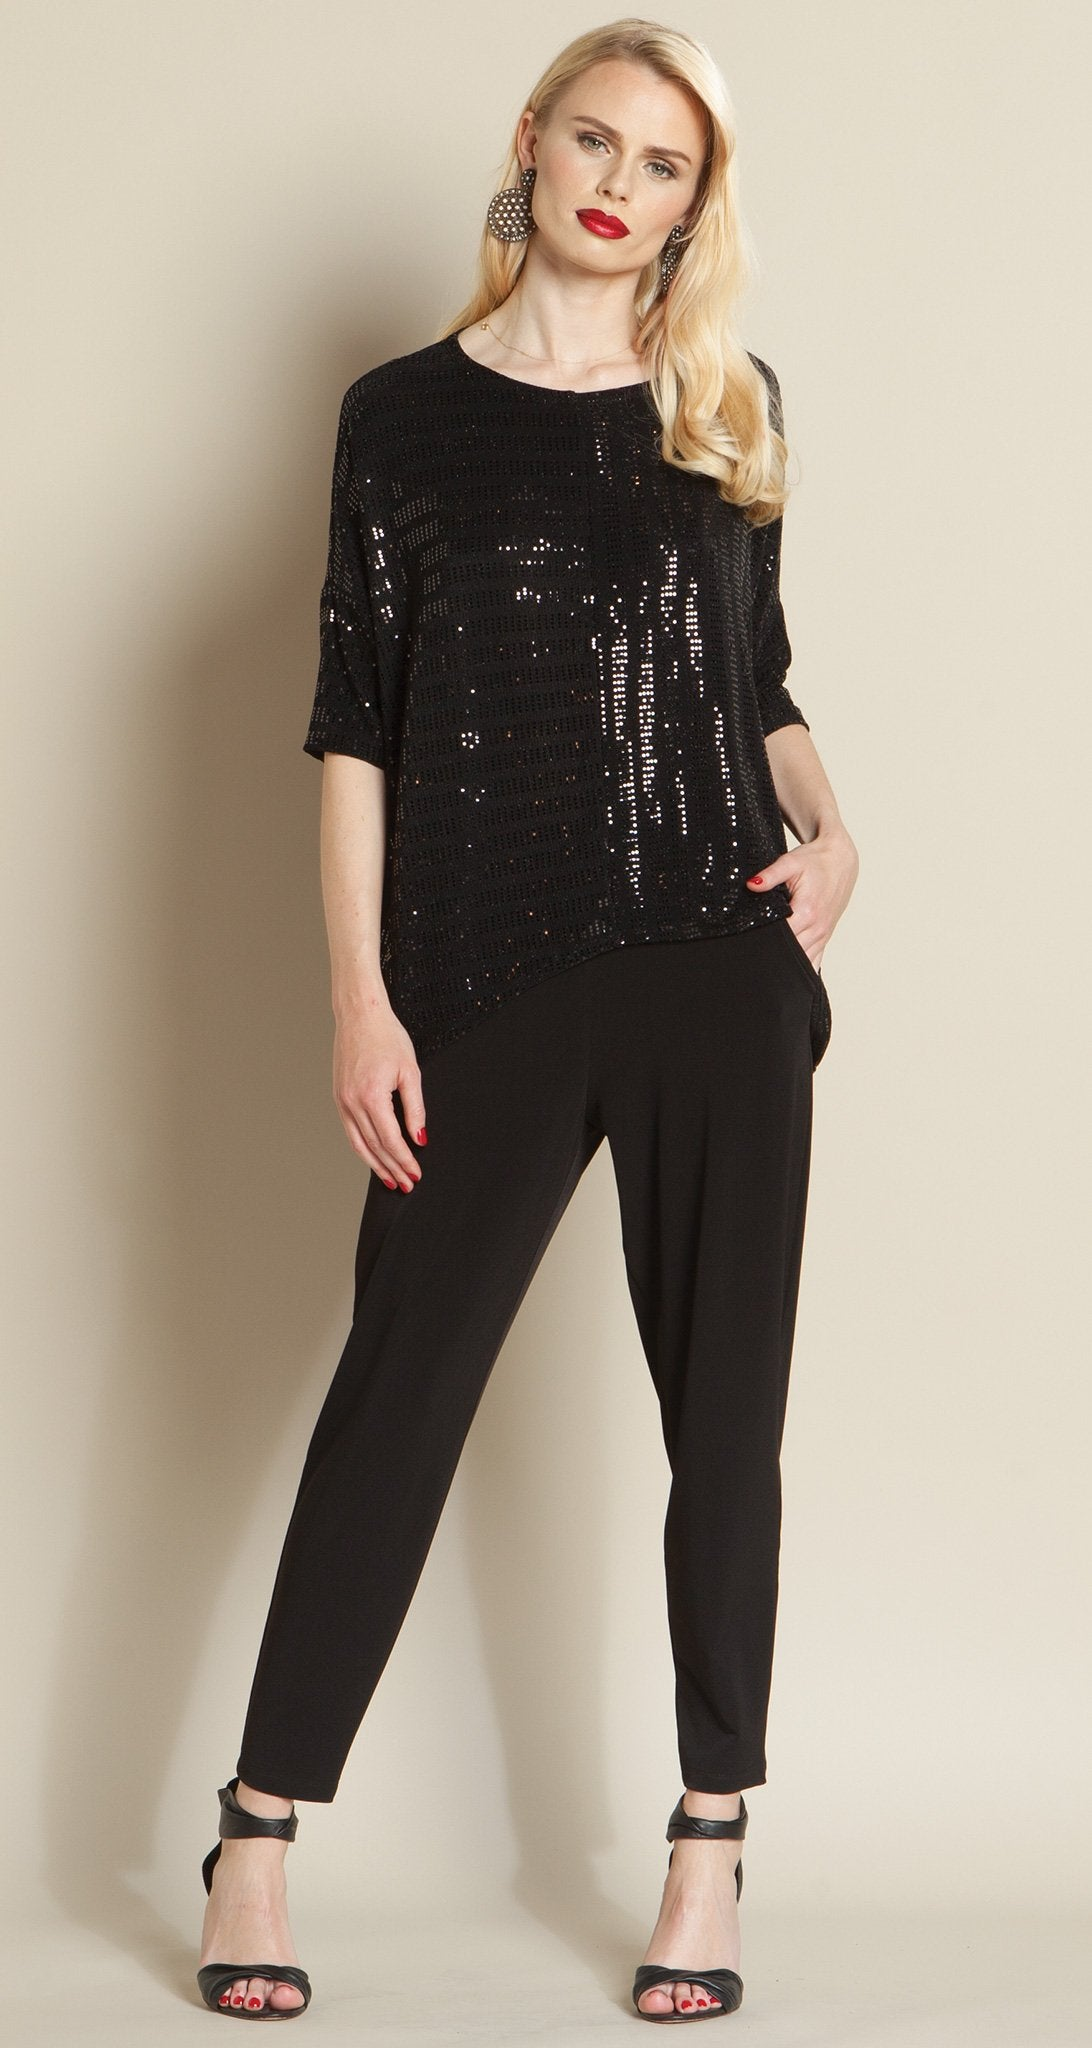 4235981983240f Shimmer Sequin Box Top - Black - As seen on Today Show! - Clara Sunwoo